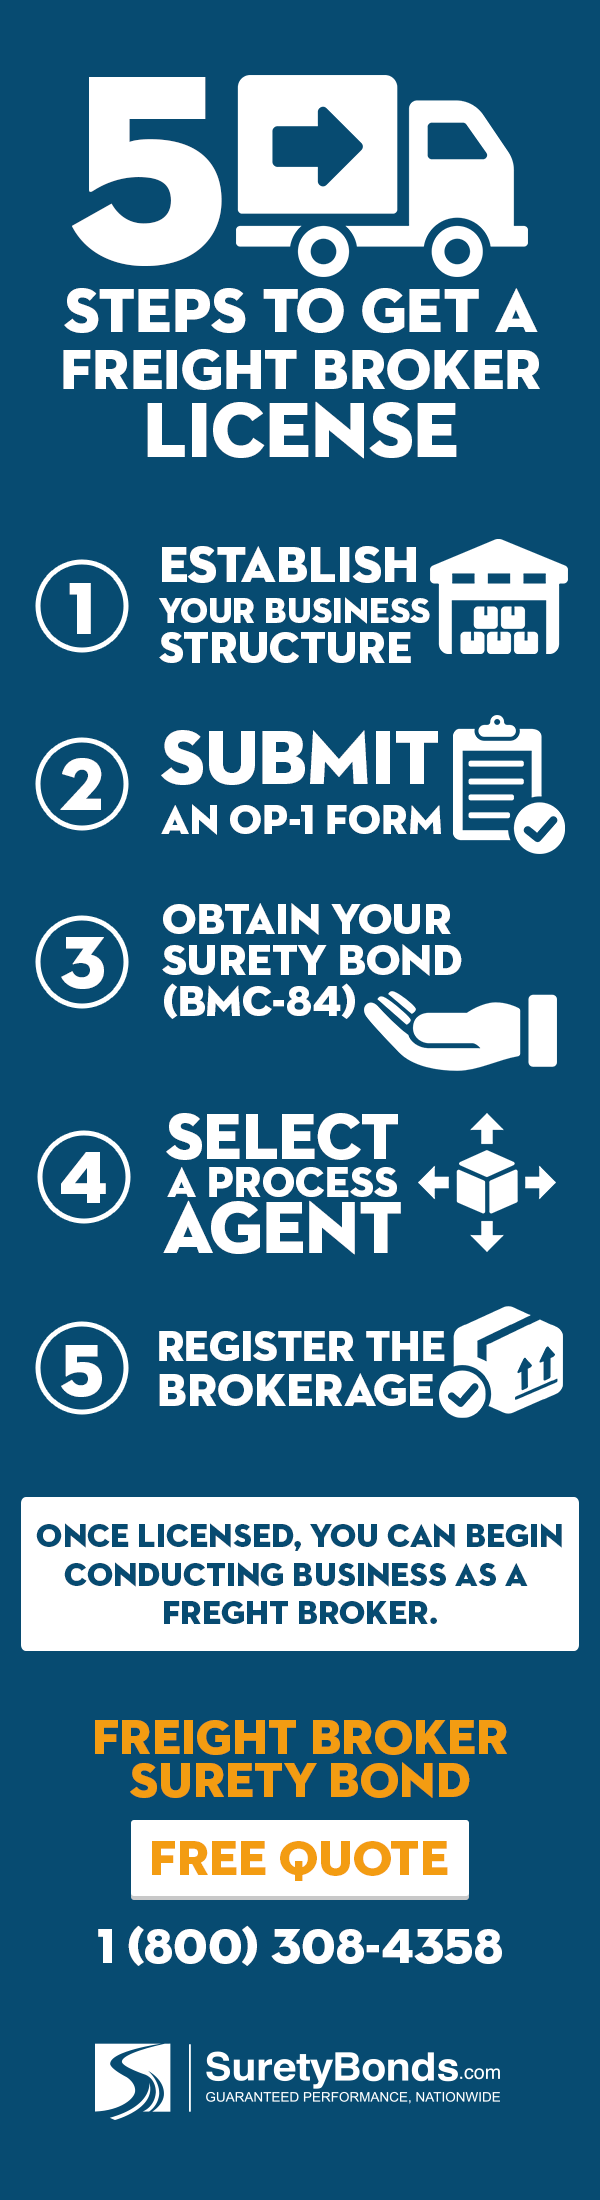 5 Steps to Get a Freight Broker License [INFOGRAPHIC]